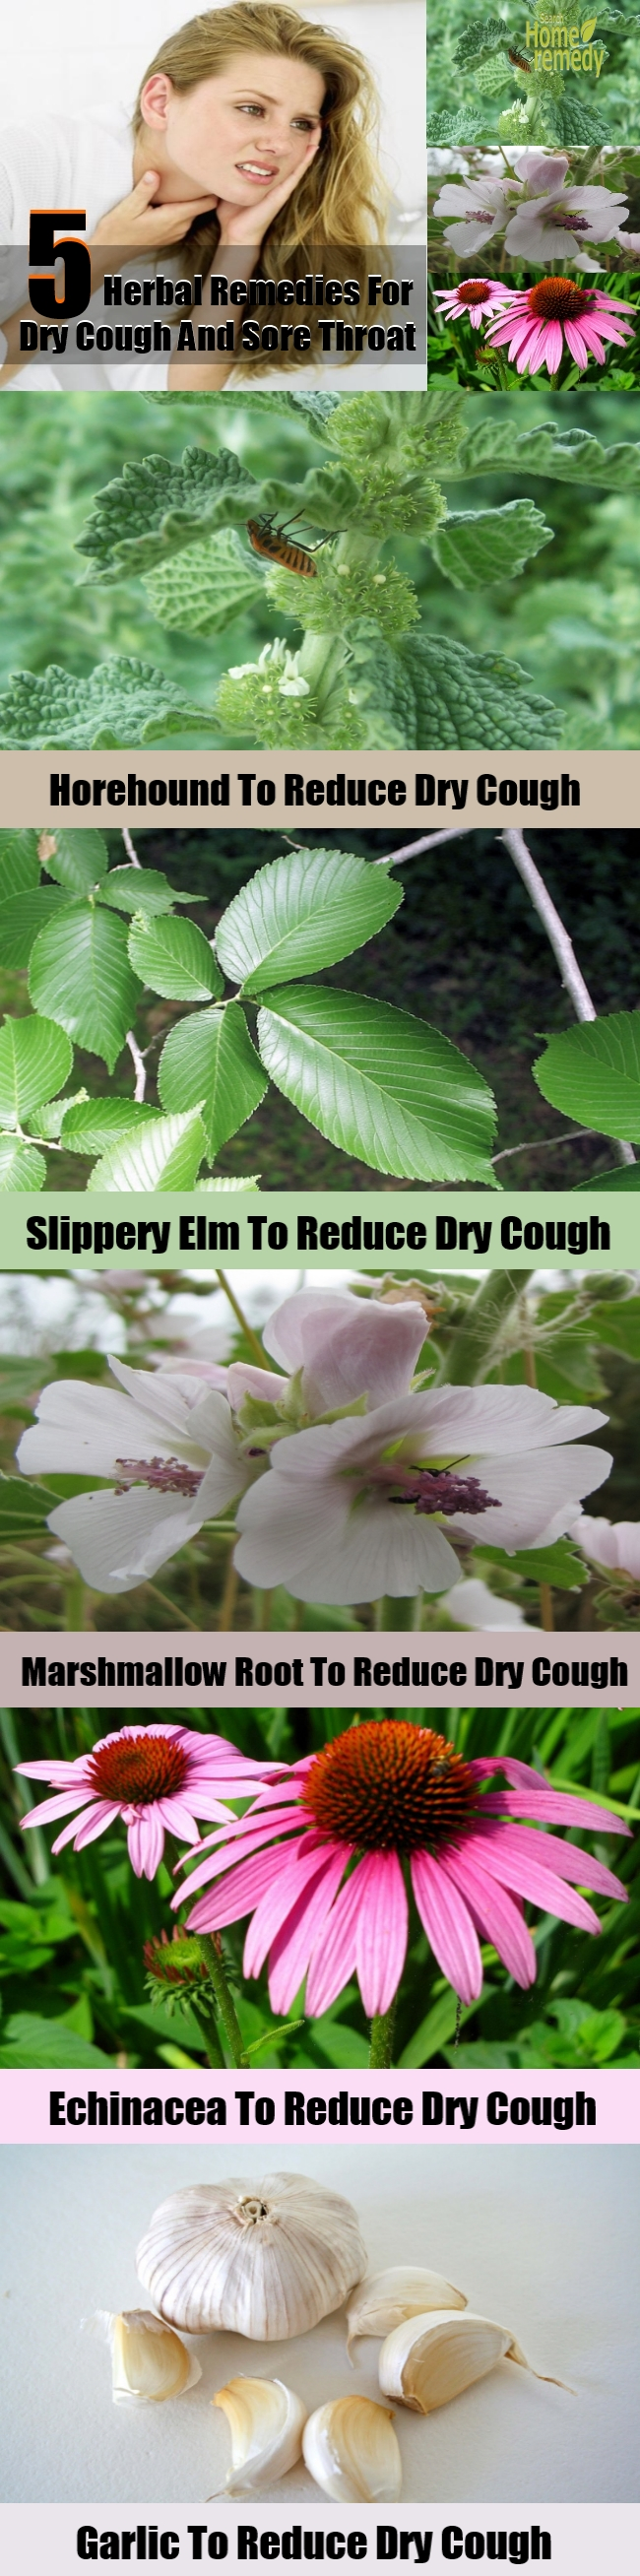 Top 5 Herbal Remedies For Dry Cough And Sore Throat